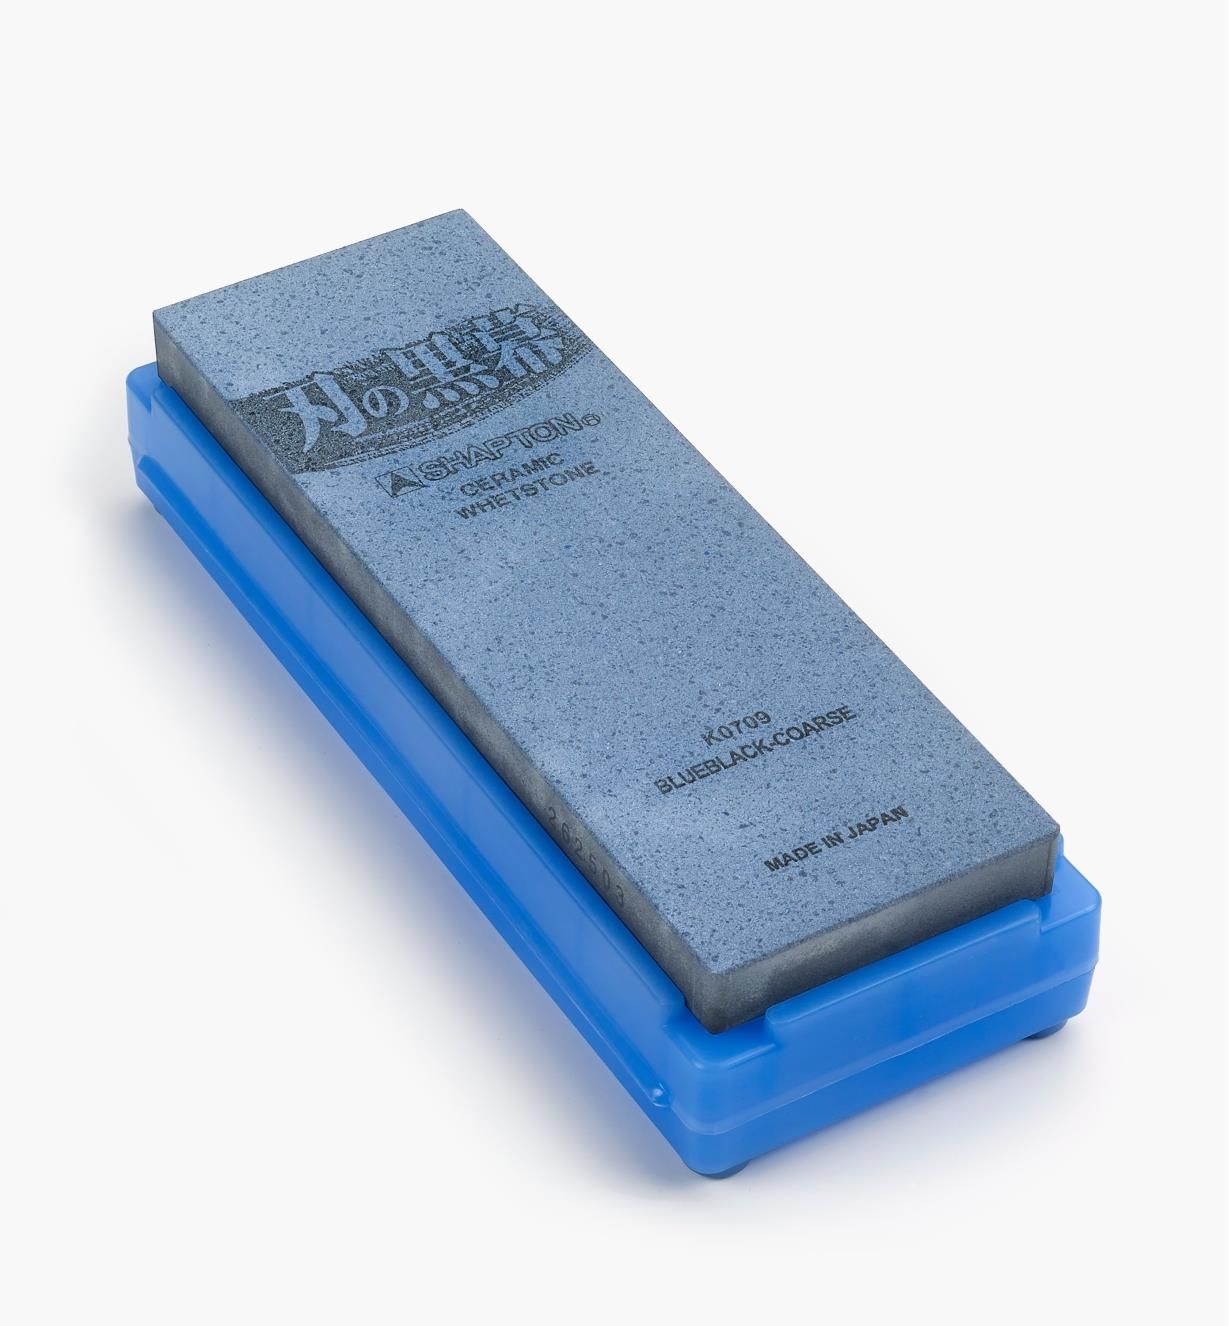 61M0103 - Shapton 320x Blue-Black Ha-No-Kuromaku Ceramic Stone